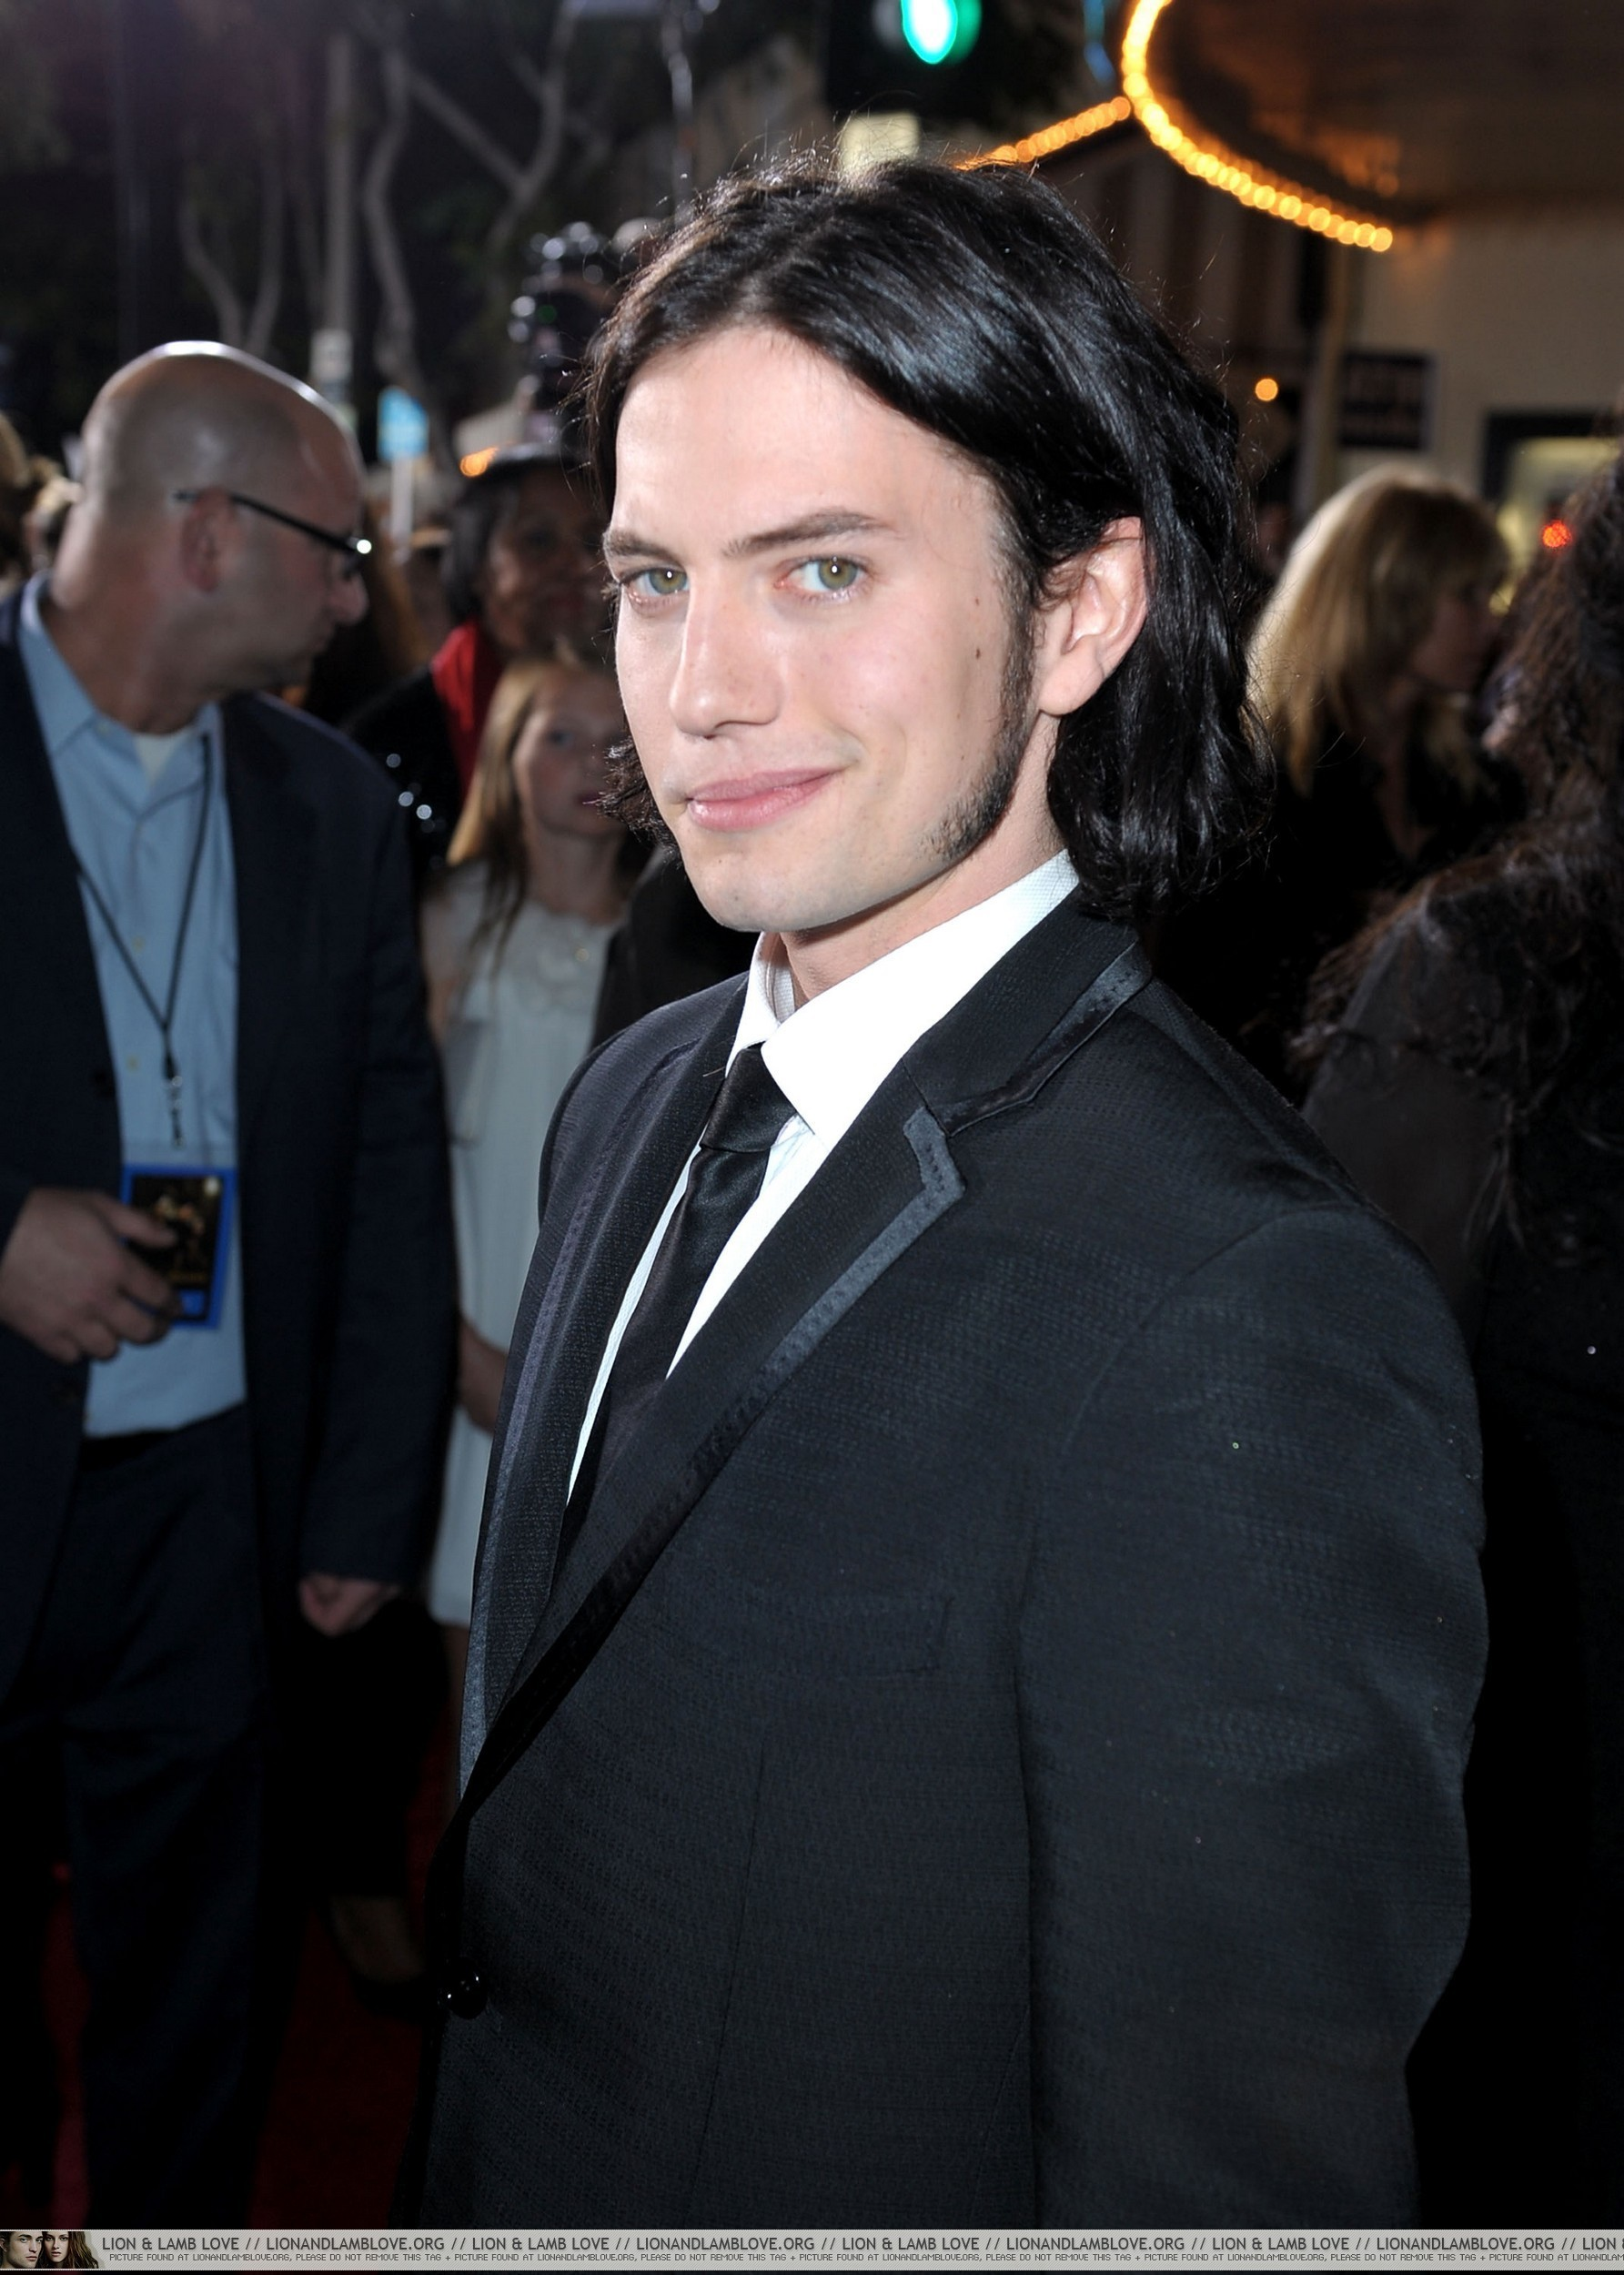 http://images2.fanpop.com/image/photos/9000000/New-Moon-premiere-twilight-series-9087647-1785-2500.jpg